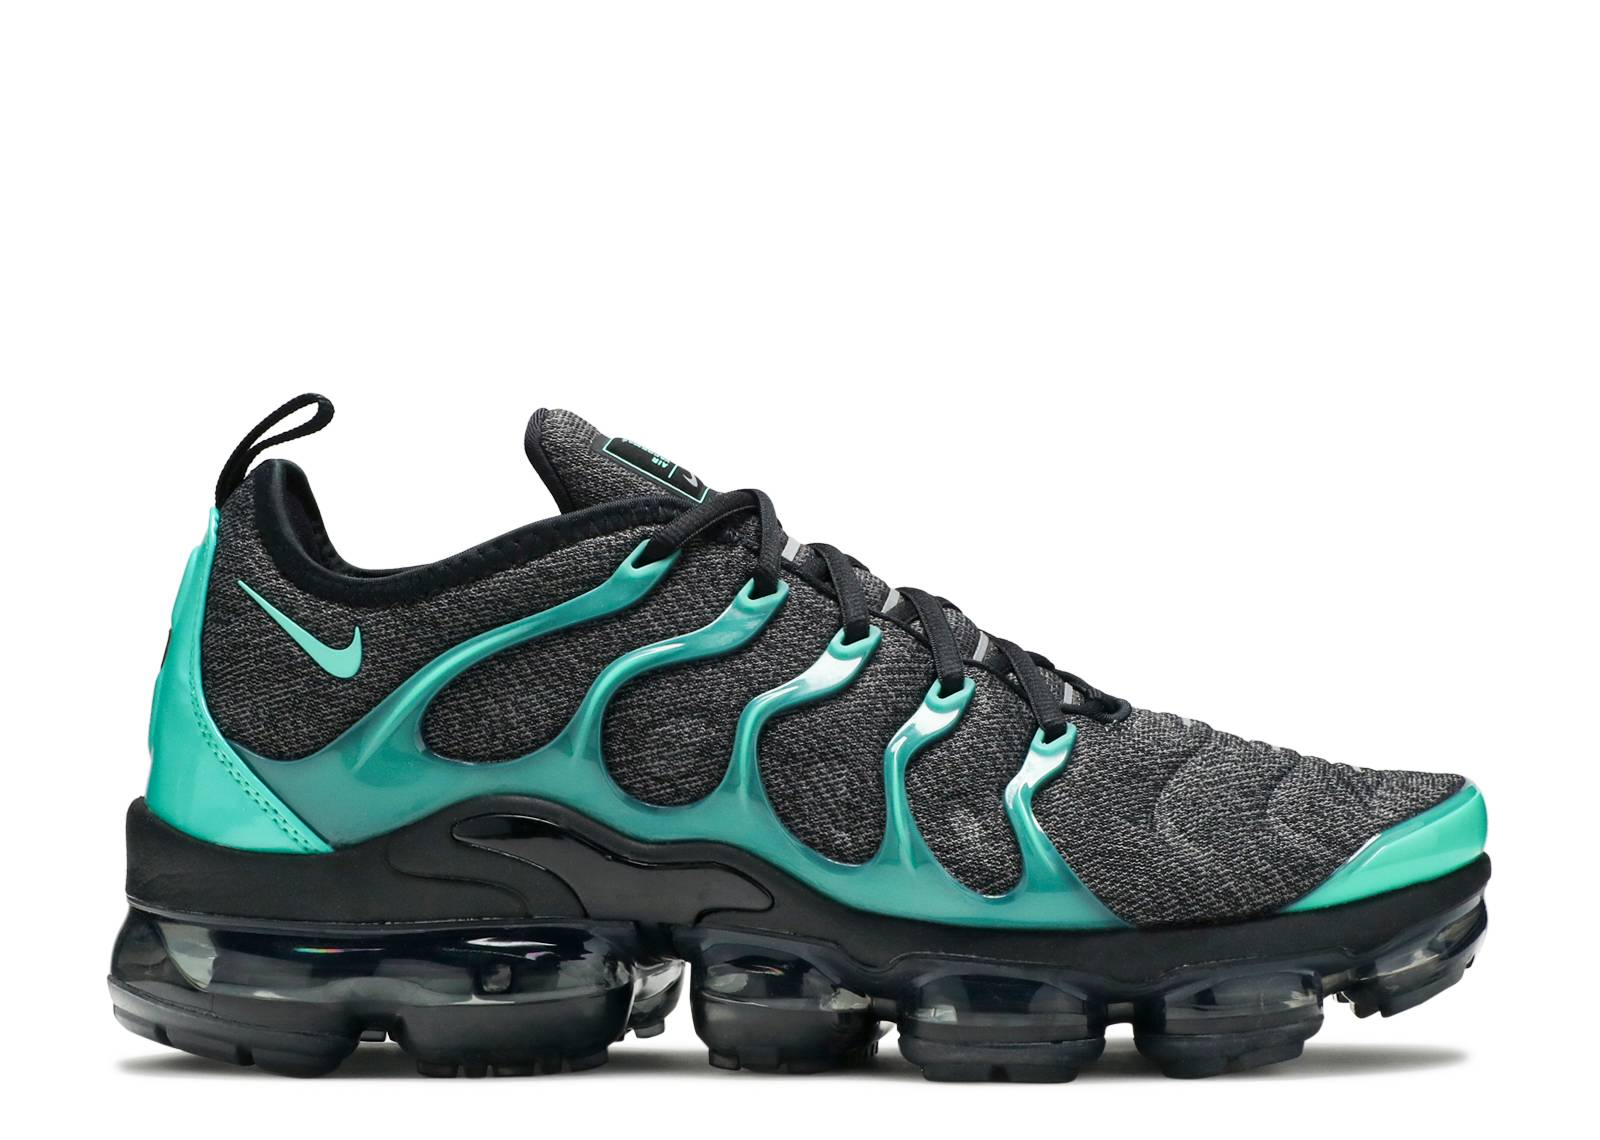 c76553a1c89 Air Vapormax Plus - Nike - 924453 013 - black clear emerald-cool ...